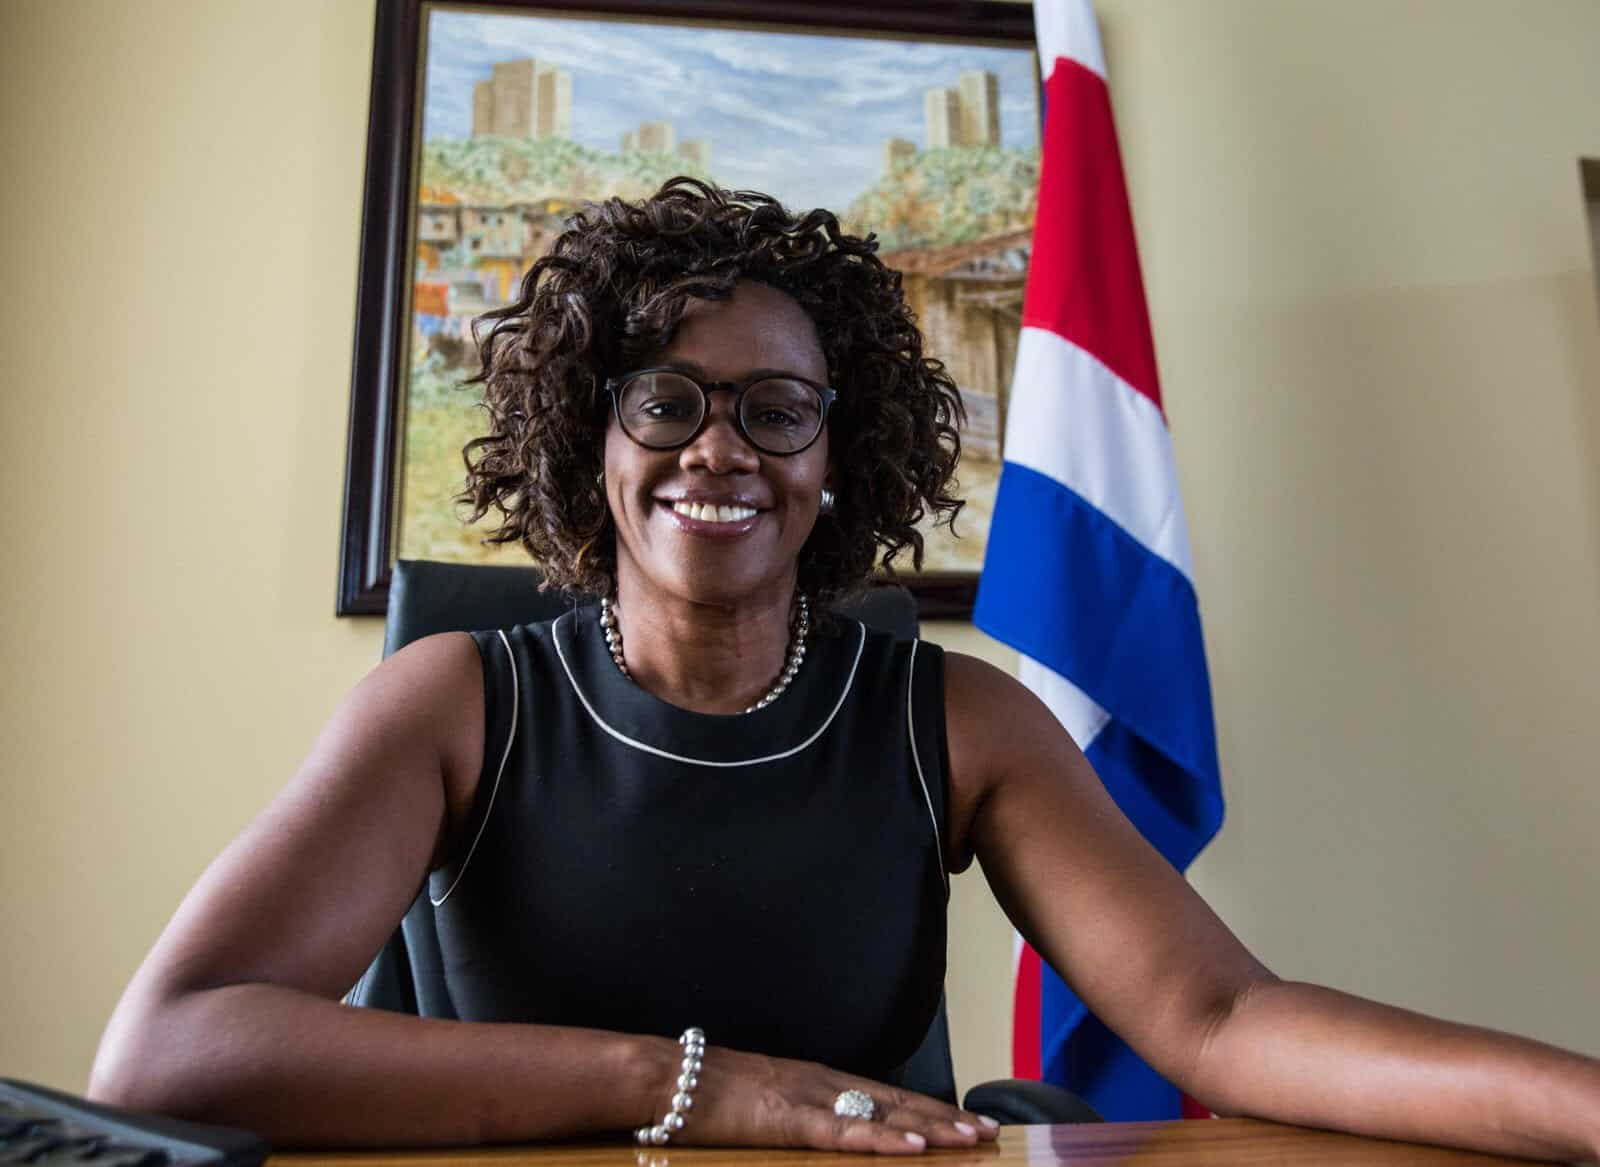 Costa Rican Vice President-elect Epsy Campbell on April 5, 2018.